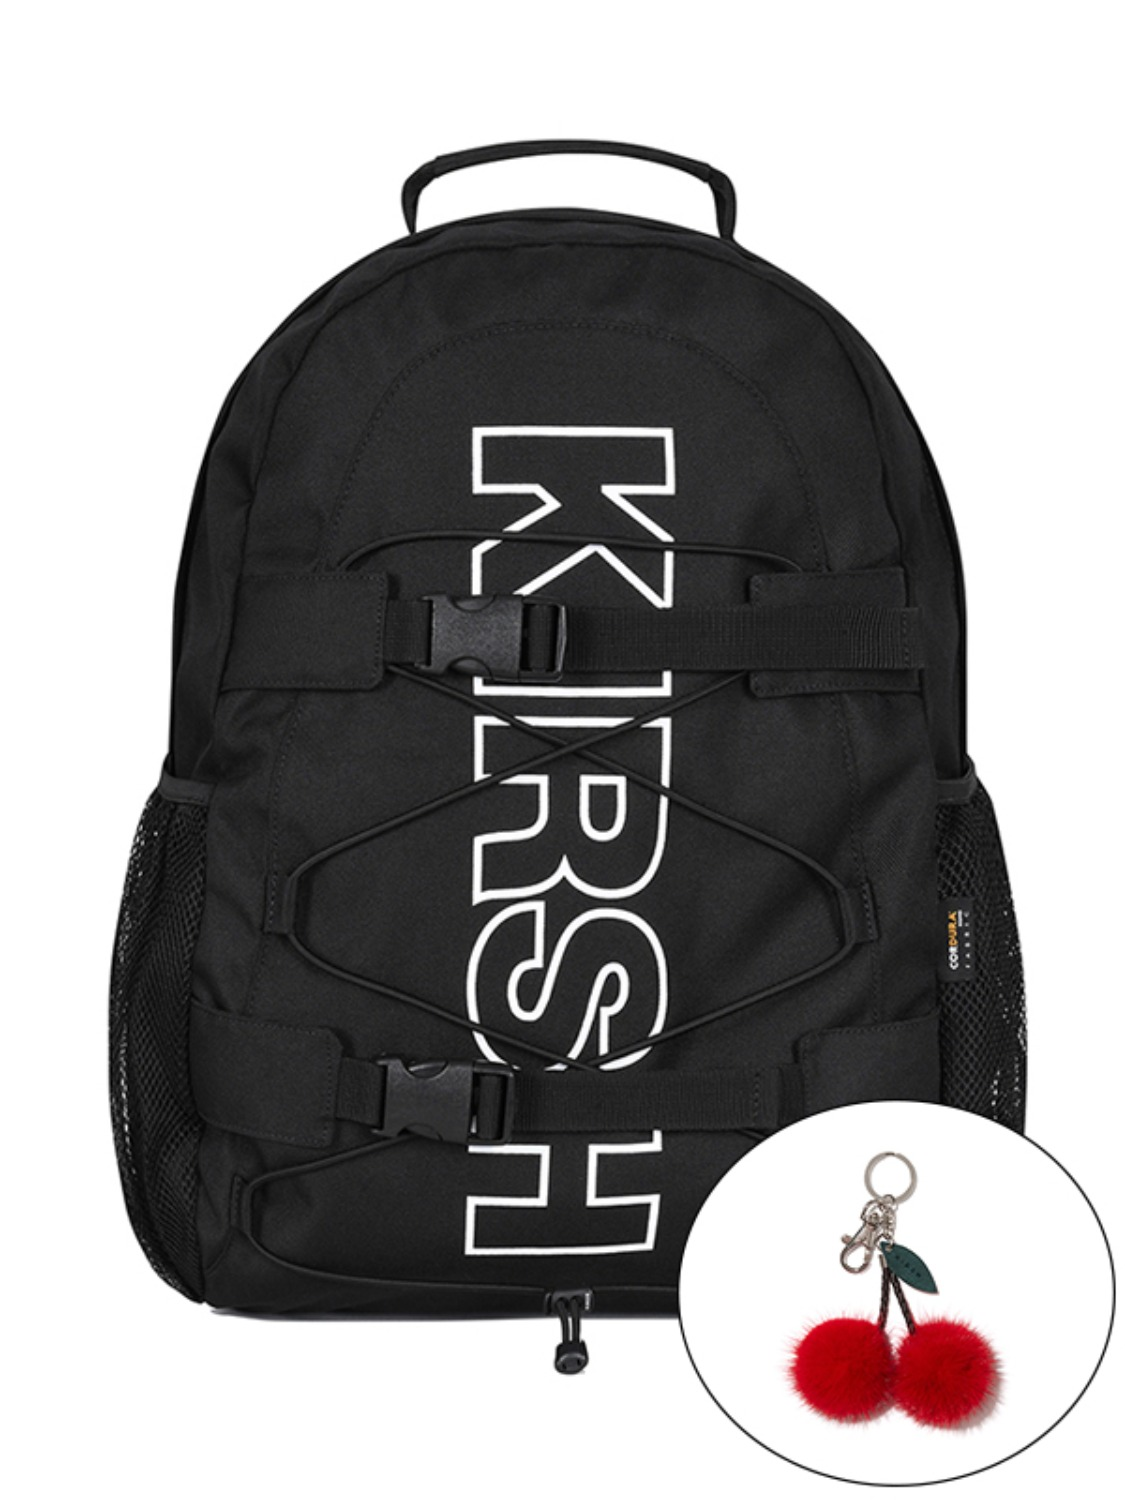 KIRSH POCKET SPORTS BACKPACK KS [BLACK]